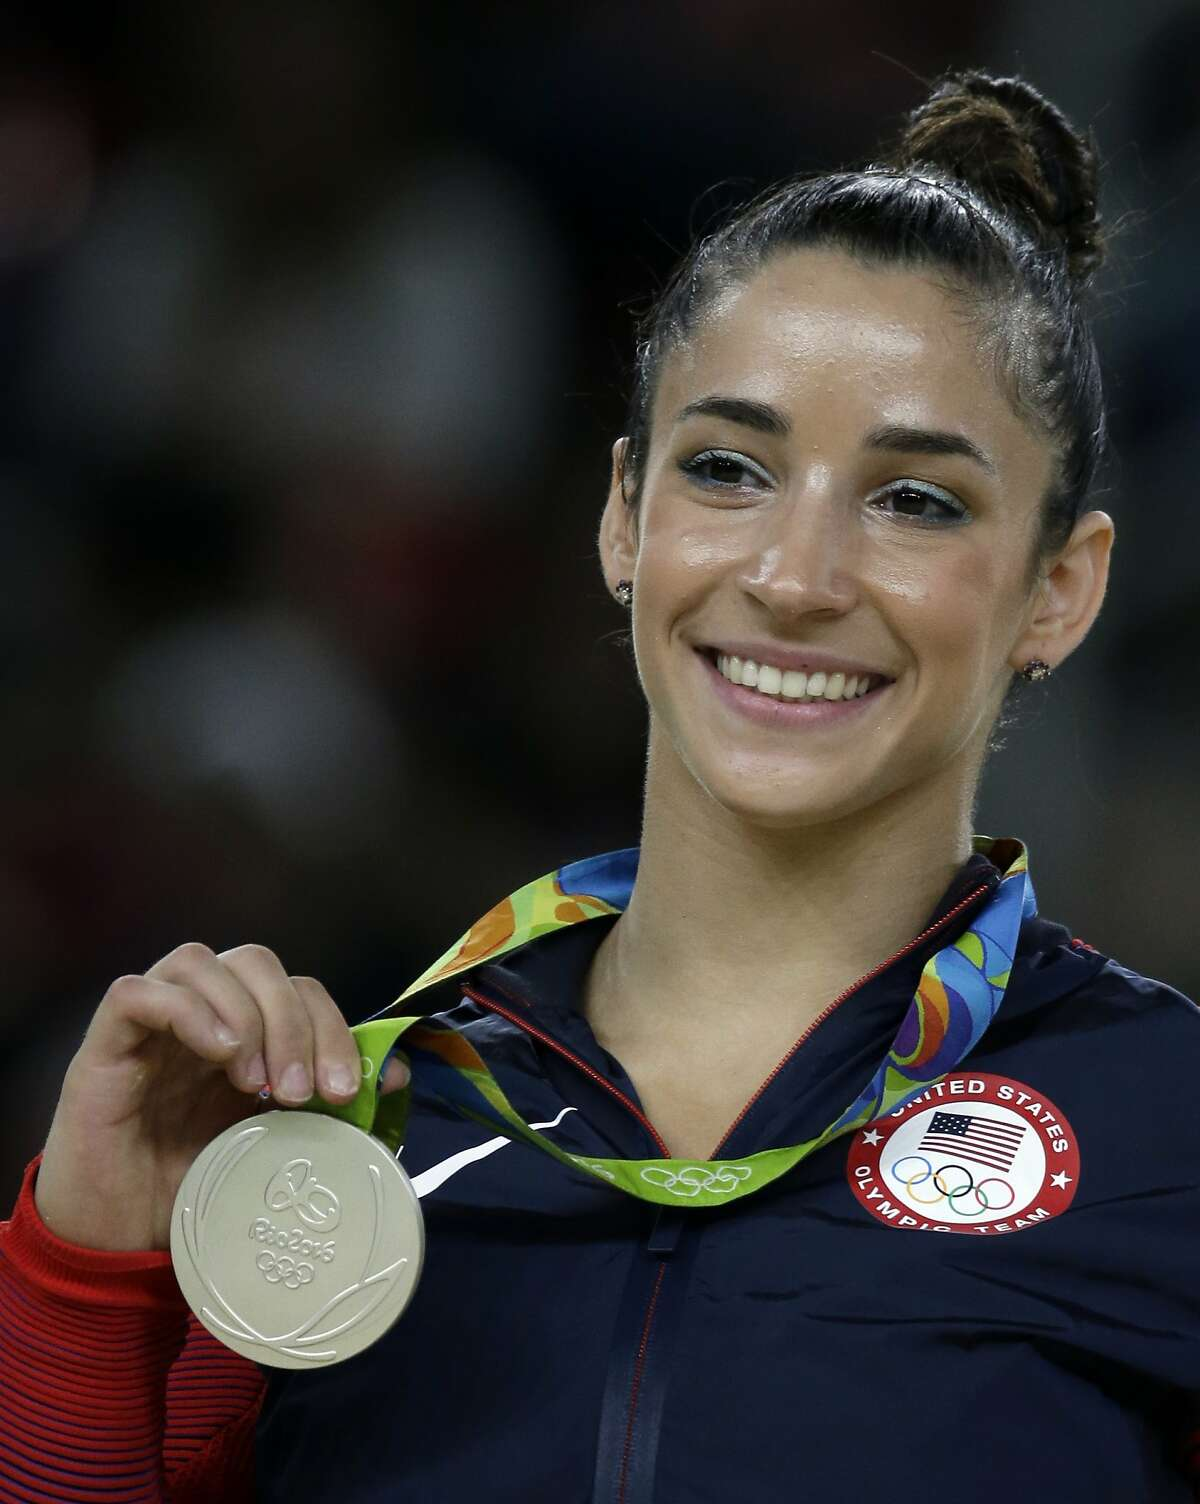 United States' Aly Raisman displays her silver medal for floor during the artistic gymnastics women's apparatus final at the 2016 Summer Olympics in Rio de Janeiro, Brazil, Tuesday, Aug. 16, 2016. (AP Photo/Rebecca Blackwell)